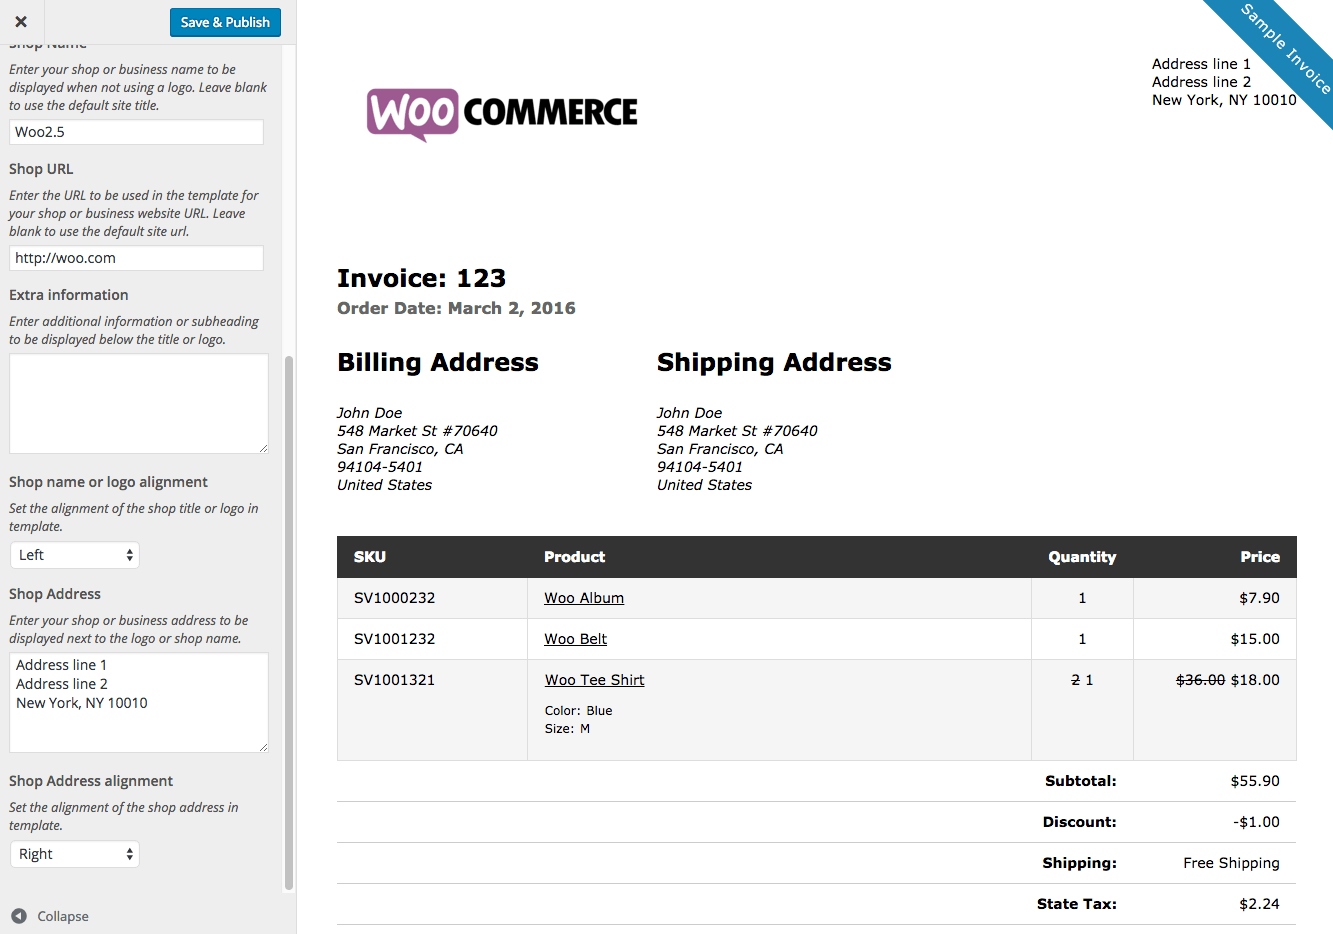 Coolmathgamesus  Outstanding Woocommerce Print Invoices Amp Packing Lists  Woocommerce Docs With Heavenly Woocommerce Print Invoices  Packing Lists Customizer With Astounding Receipt Synonym Also Irs Tax Receipt In Addition Kohls Return Without Receipt And Free Printable Receipt As Well As Zara Return Policy No Receipt Additionally Orange County Business Tax Receipt From Docswoocommercecom With Coolmathgamesus  Heavenly Woocommerce Print Invoices Amp Packing Lists  Woocommerce Docs With Astounding Woocommerce Print Invoices  Packing Lists Customizer And Outstanding Receipt Synonym Also Irs Tax Receipt In Addition Kohls Return Without Receipt From Docswoocommercecom